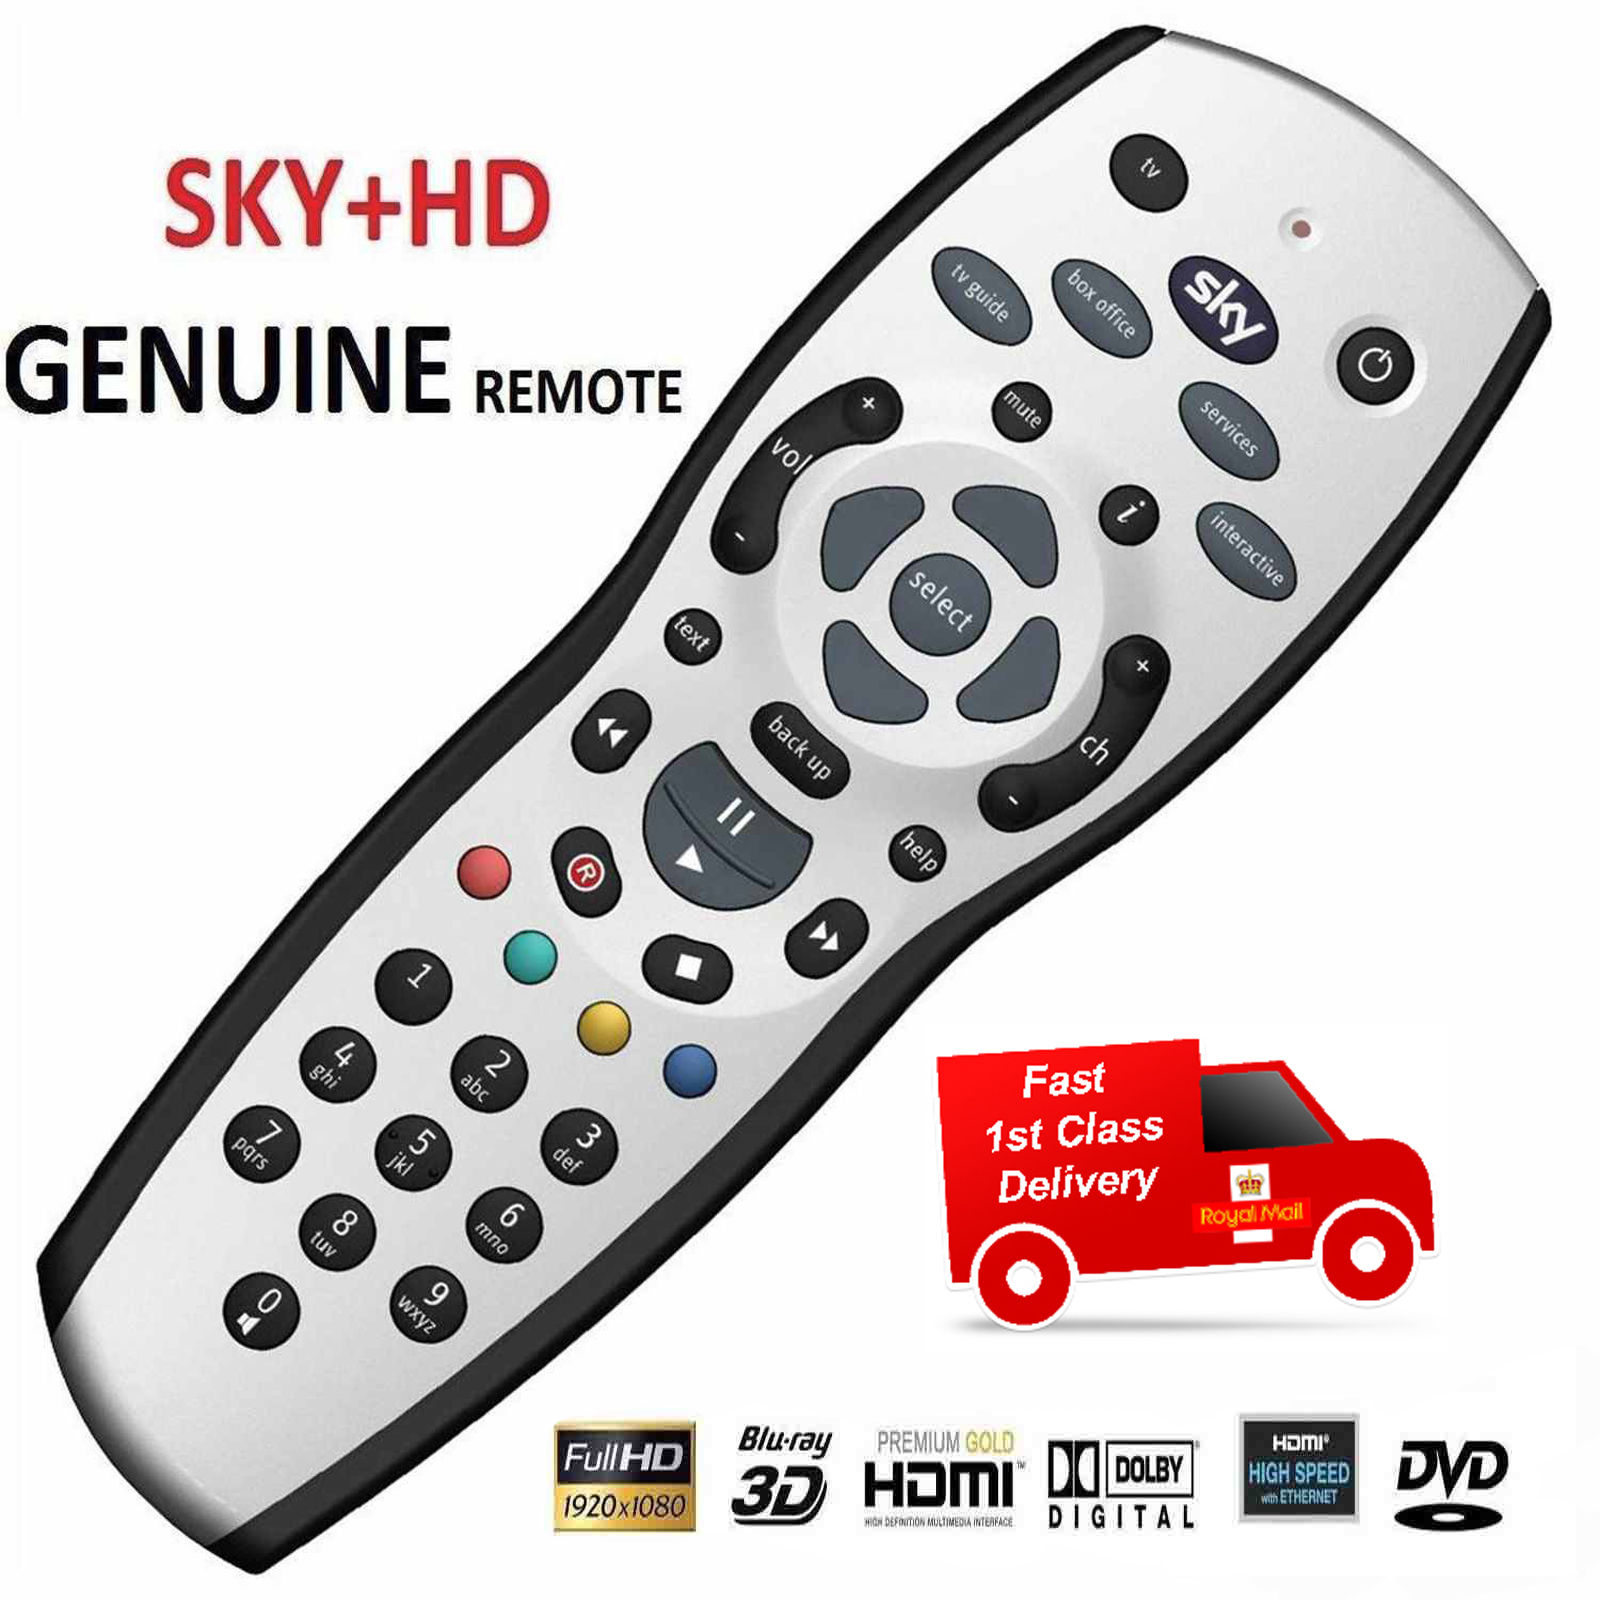 NEW SKY + PLUS HD REV 9 REMOTE CONTROL GENUINE REPLACEMENT HQ